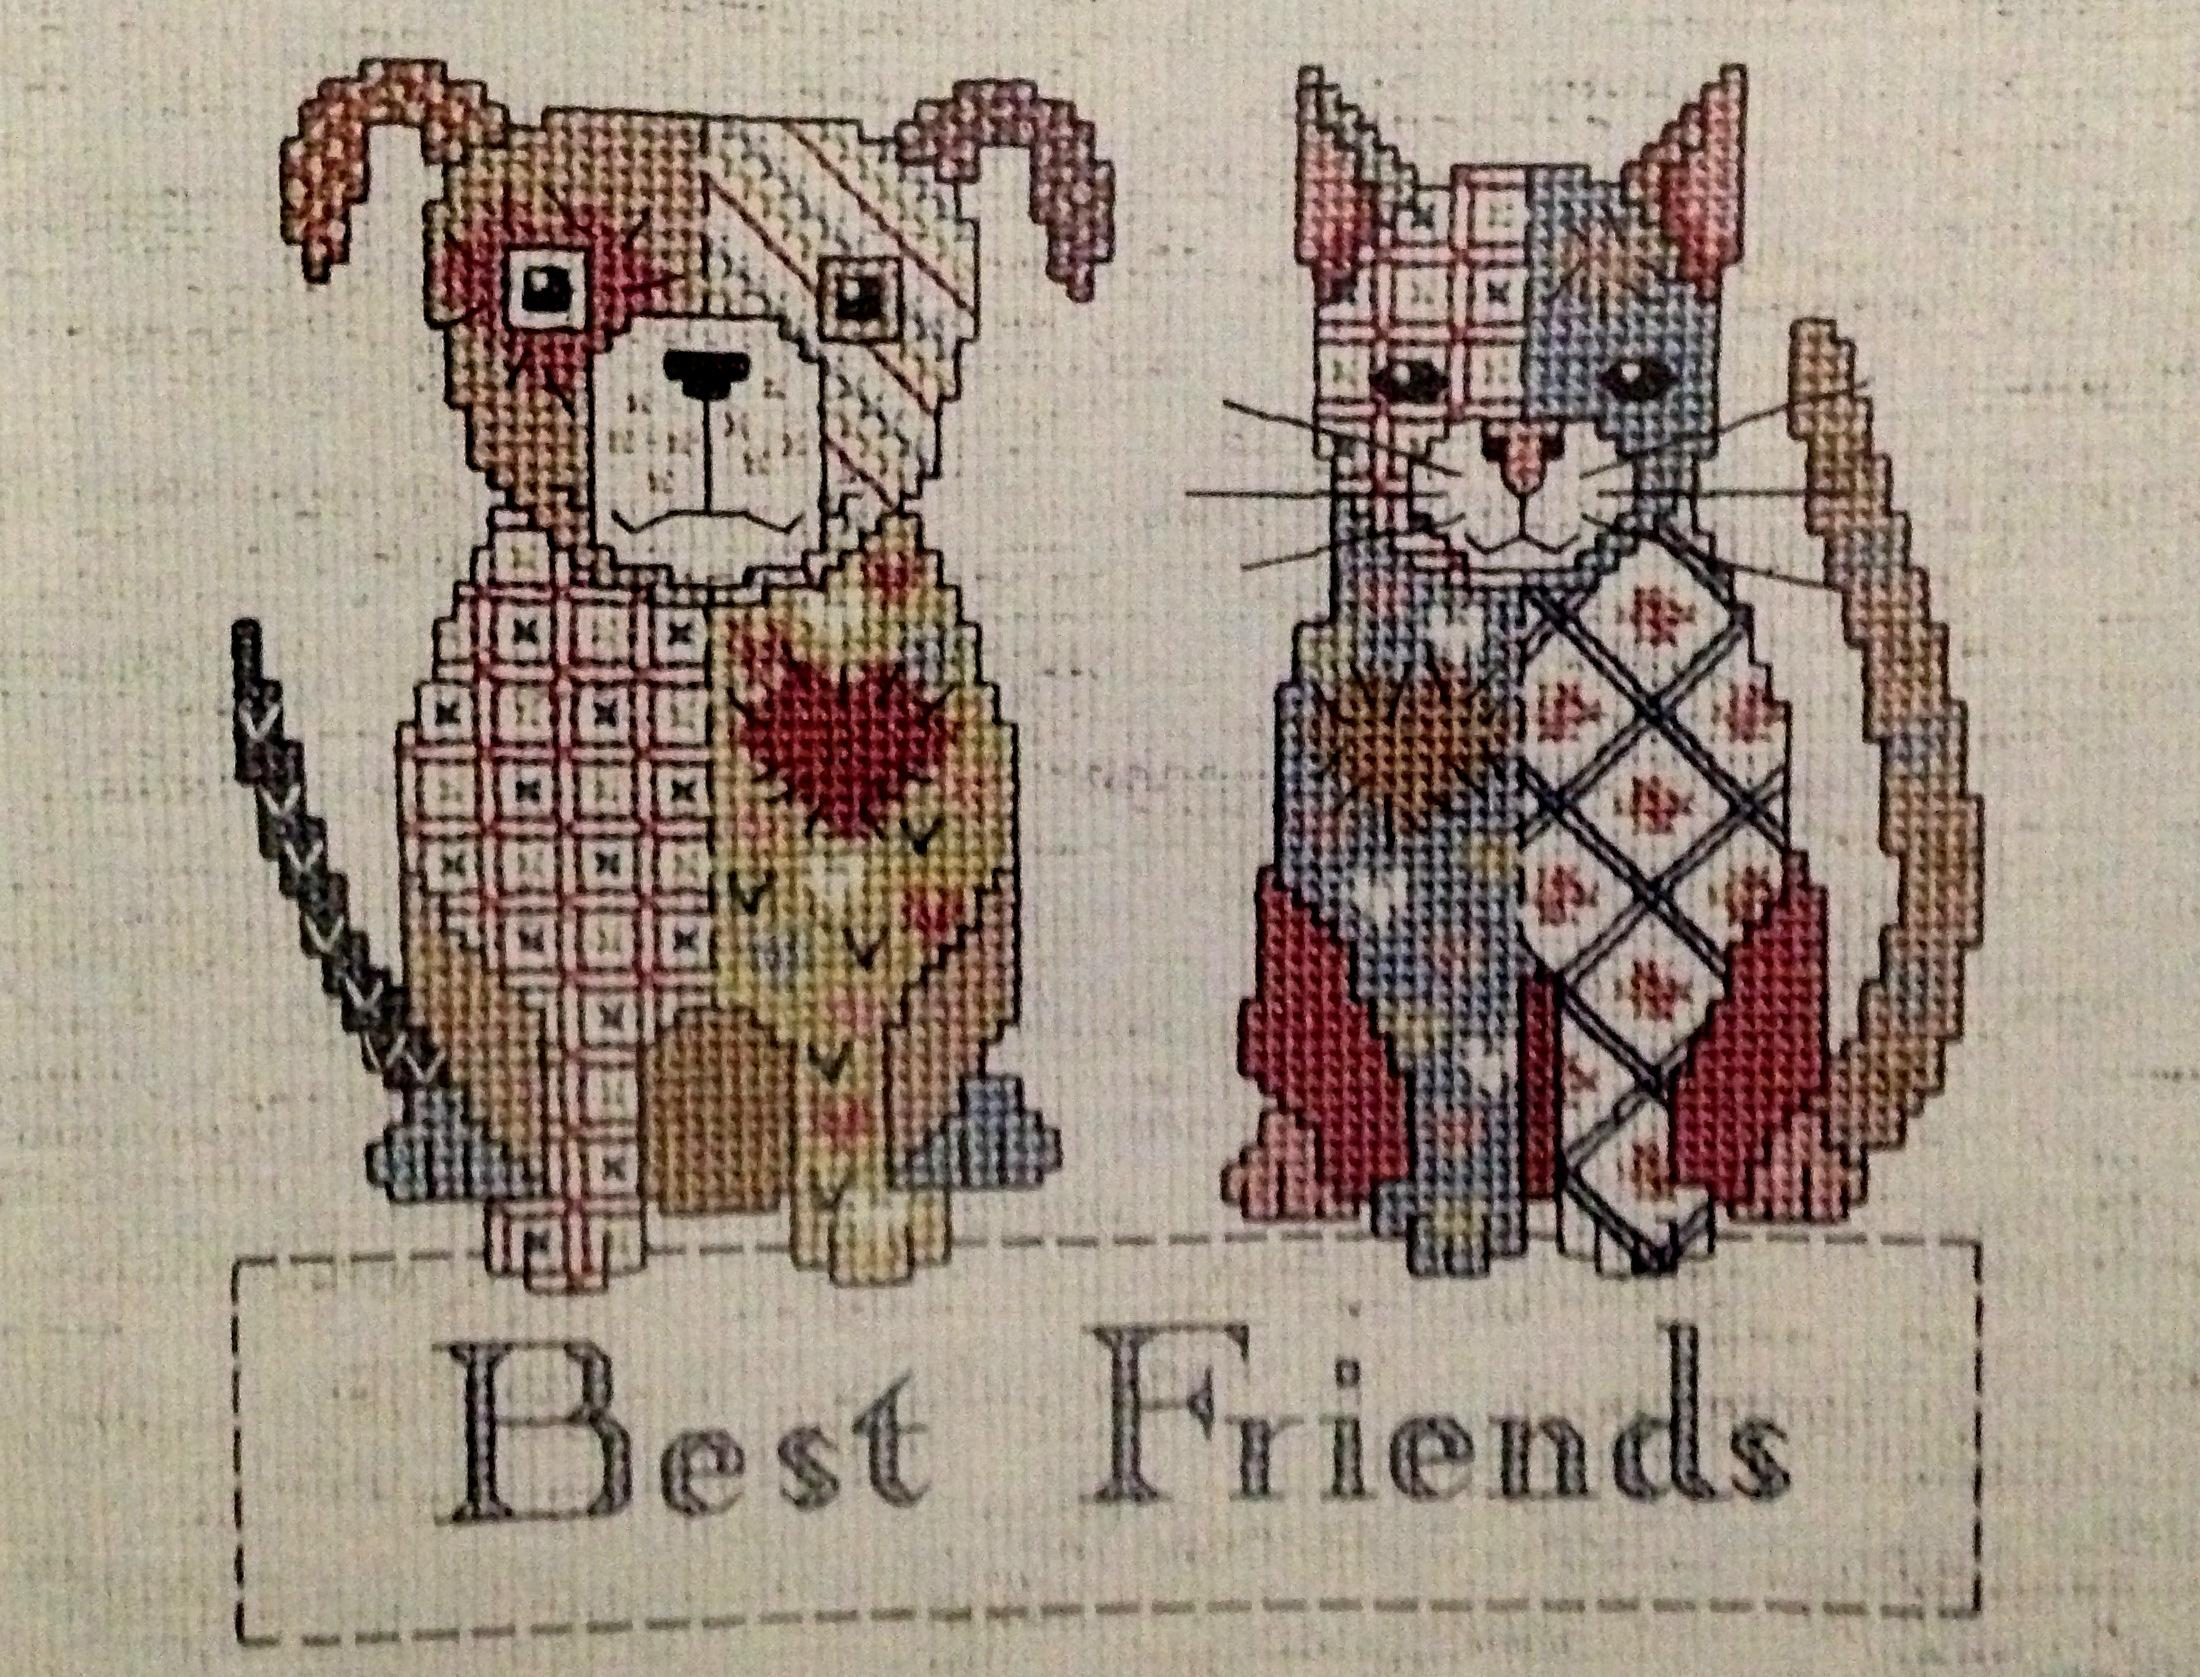 20 Ideas For What You Can Do With Cross-Stitch When Finished?